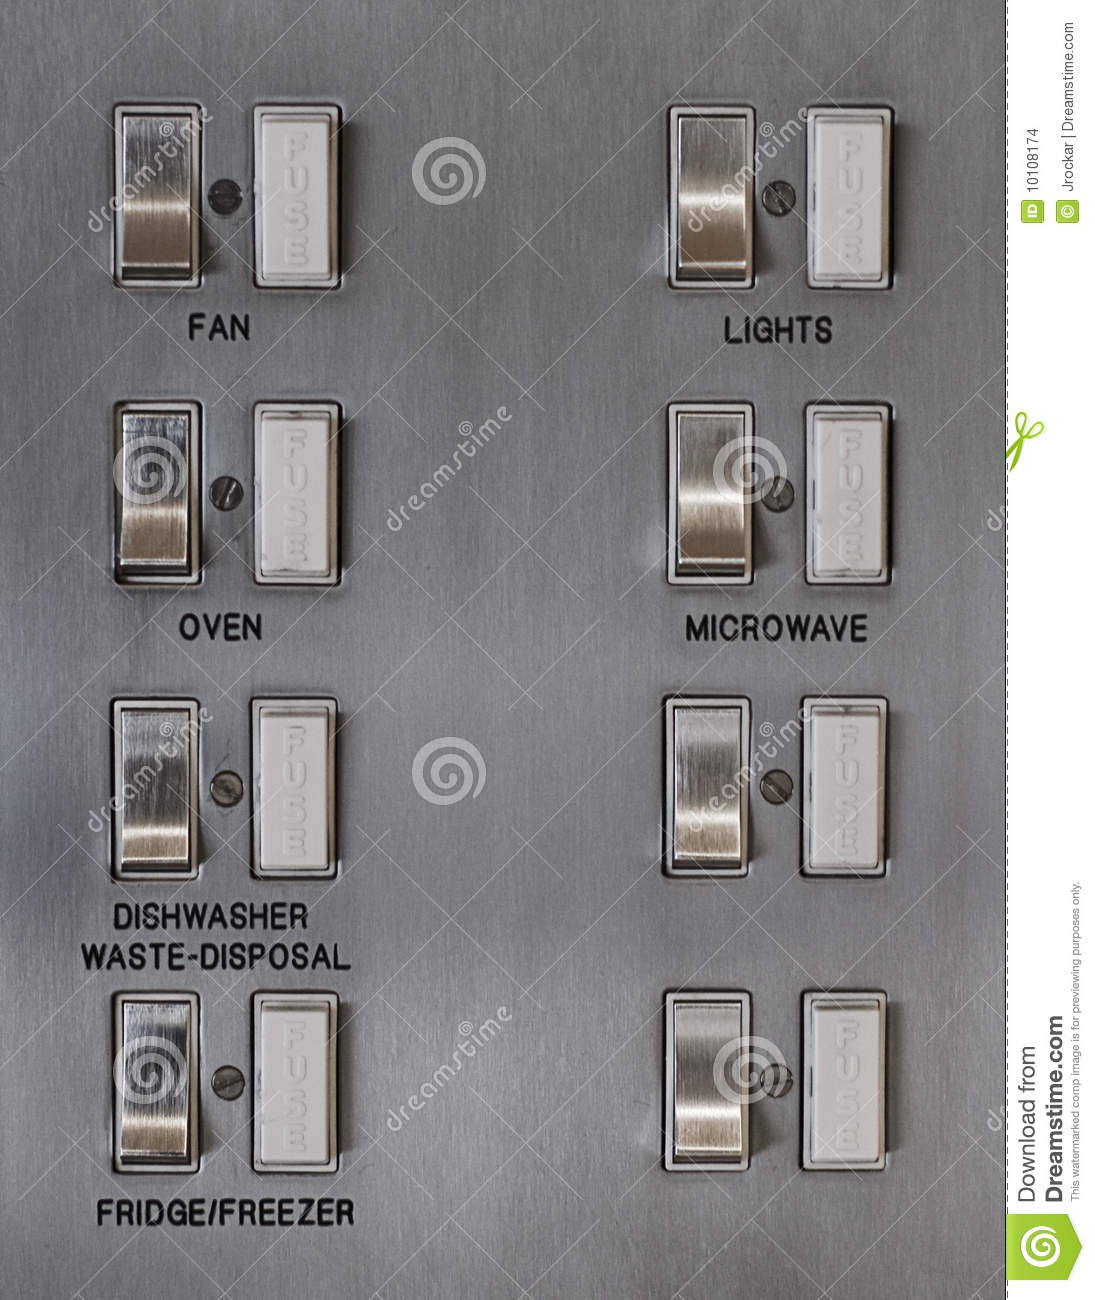 Fuse Box Kitchen Data Wiring Diagram Today Main Breaker Stock Photo Image Of Residence Lights 10108174 Circuit